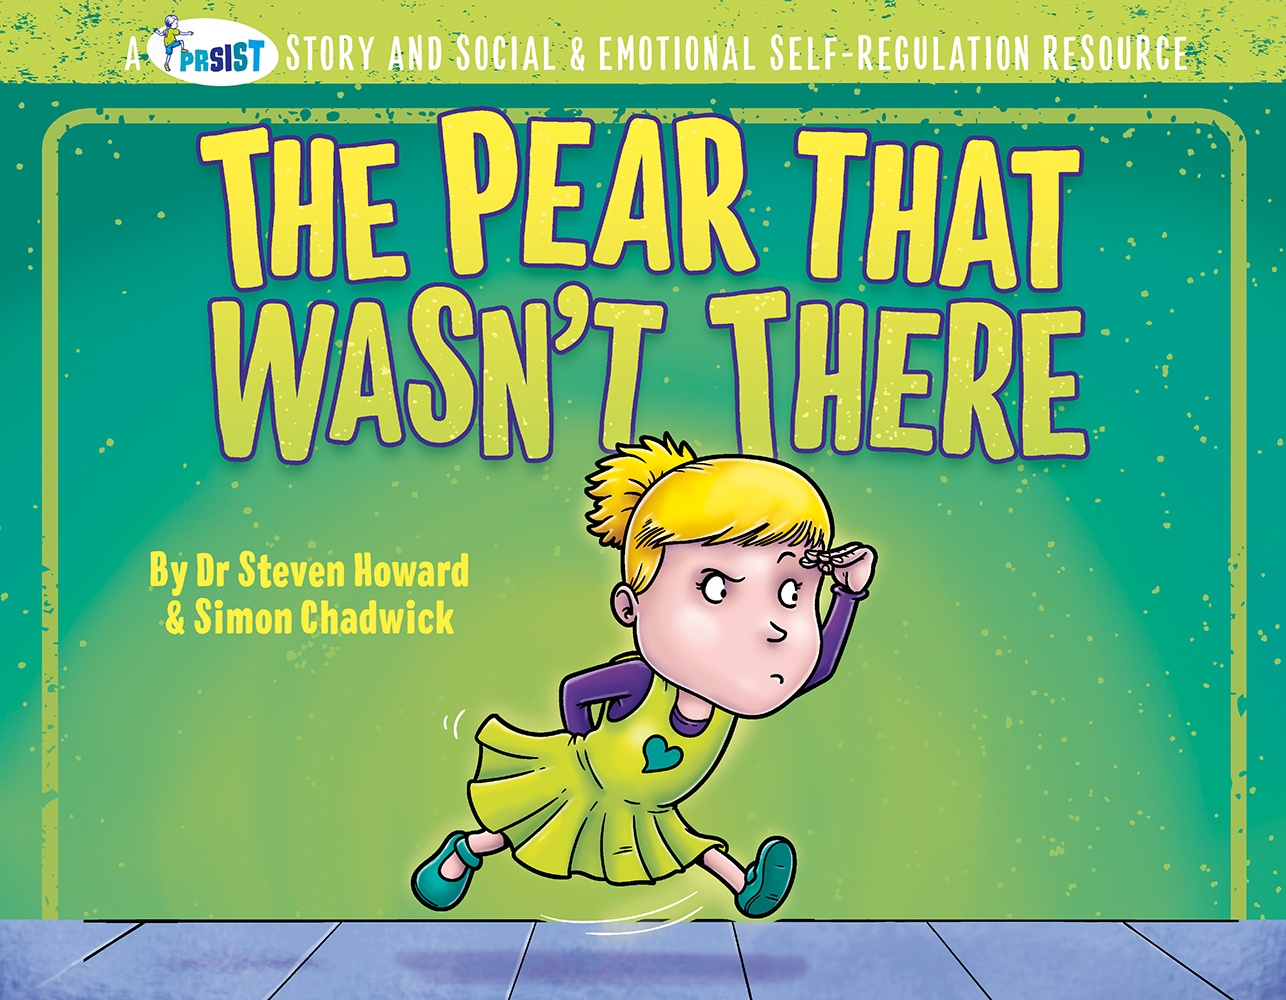 Cover of The Pear That Wasn't There from Ceratopia Books, a PRSIST book